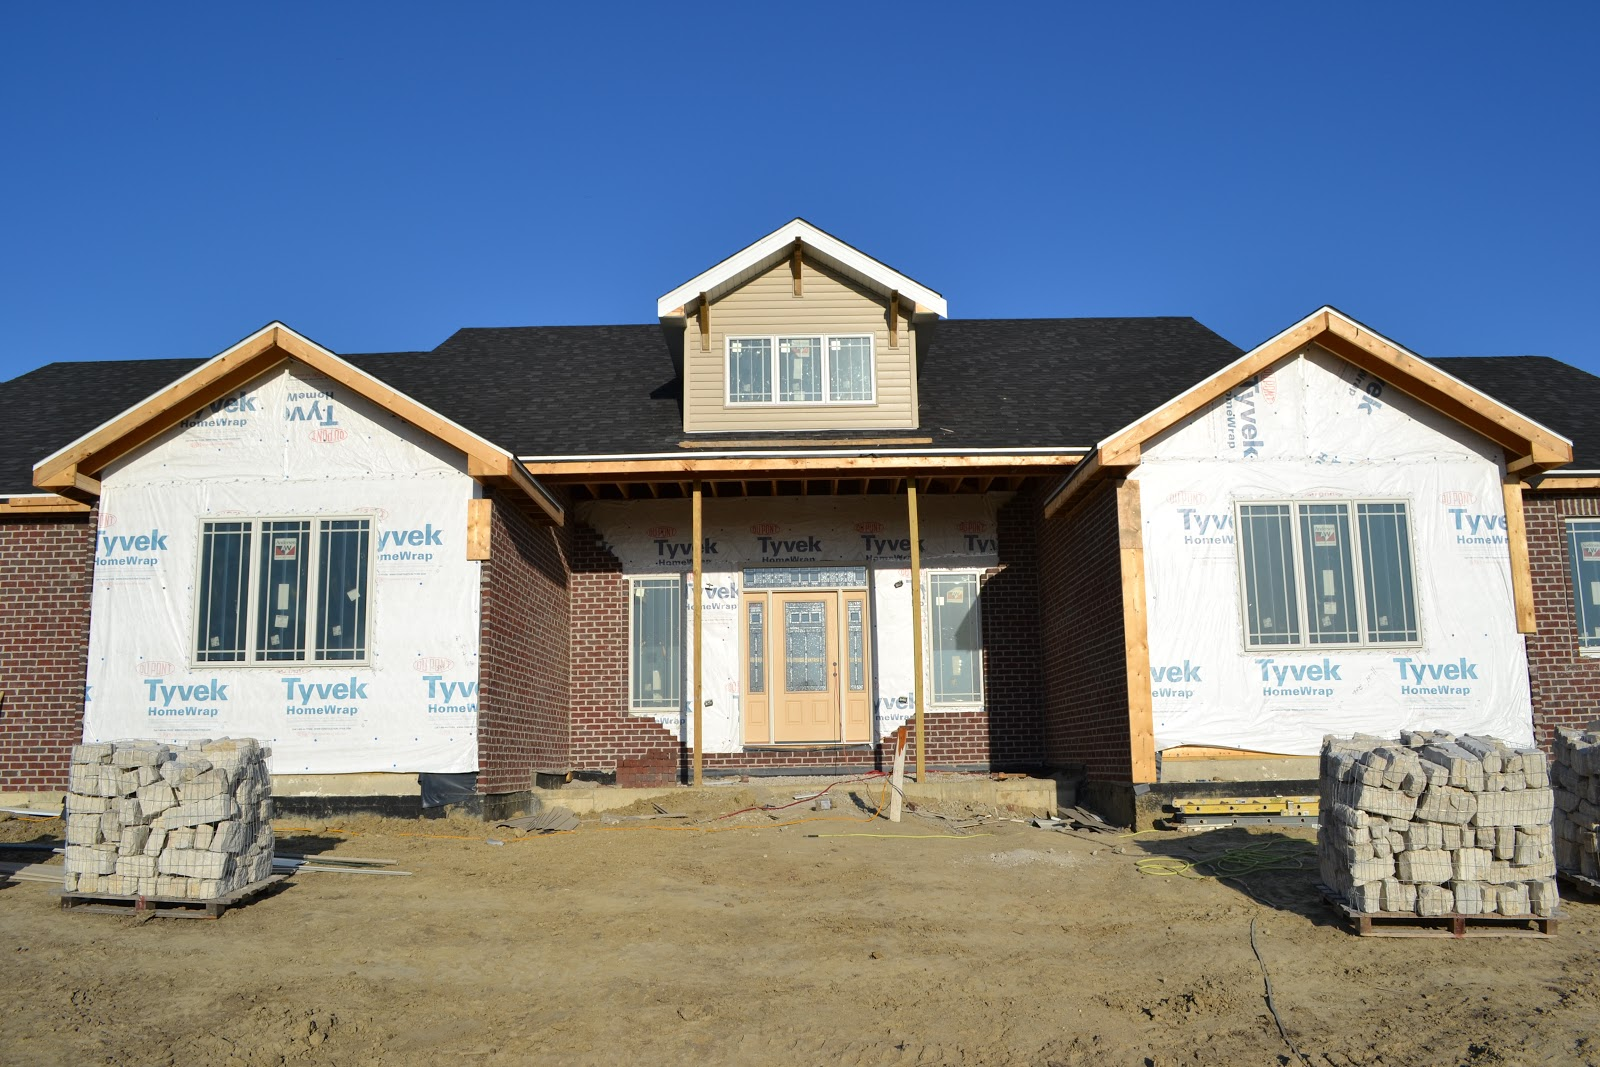 Decorative Stone Siding For Homes : The taylor s in week thursday